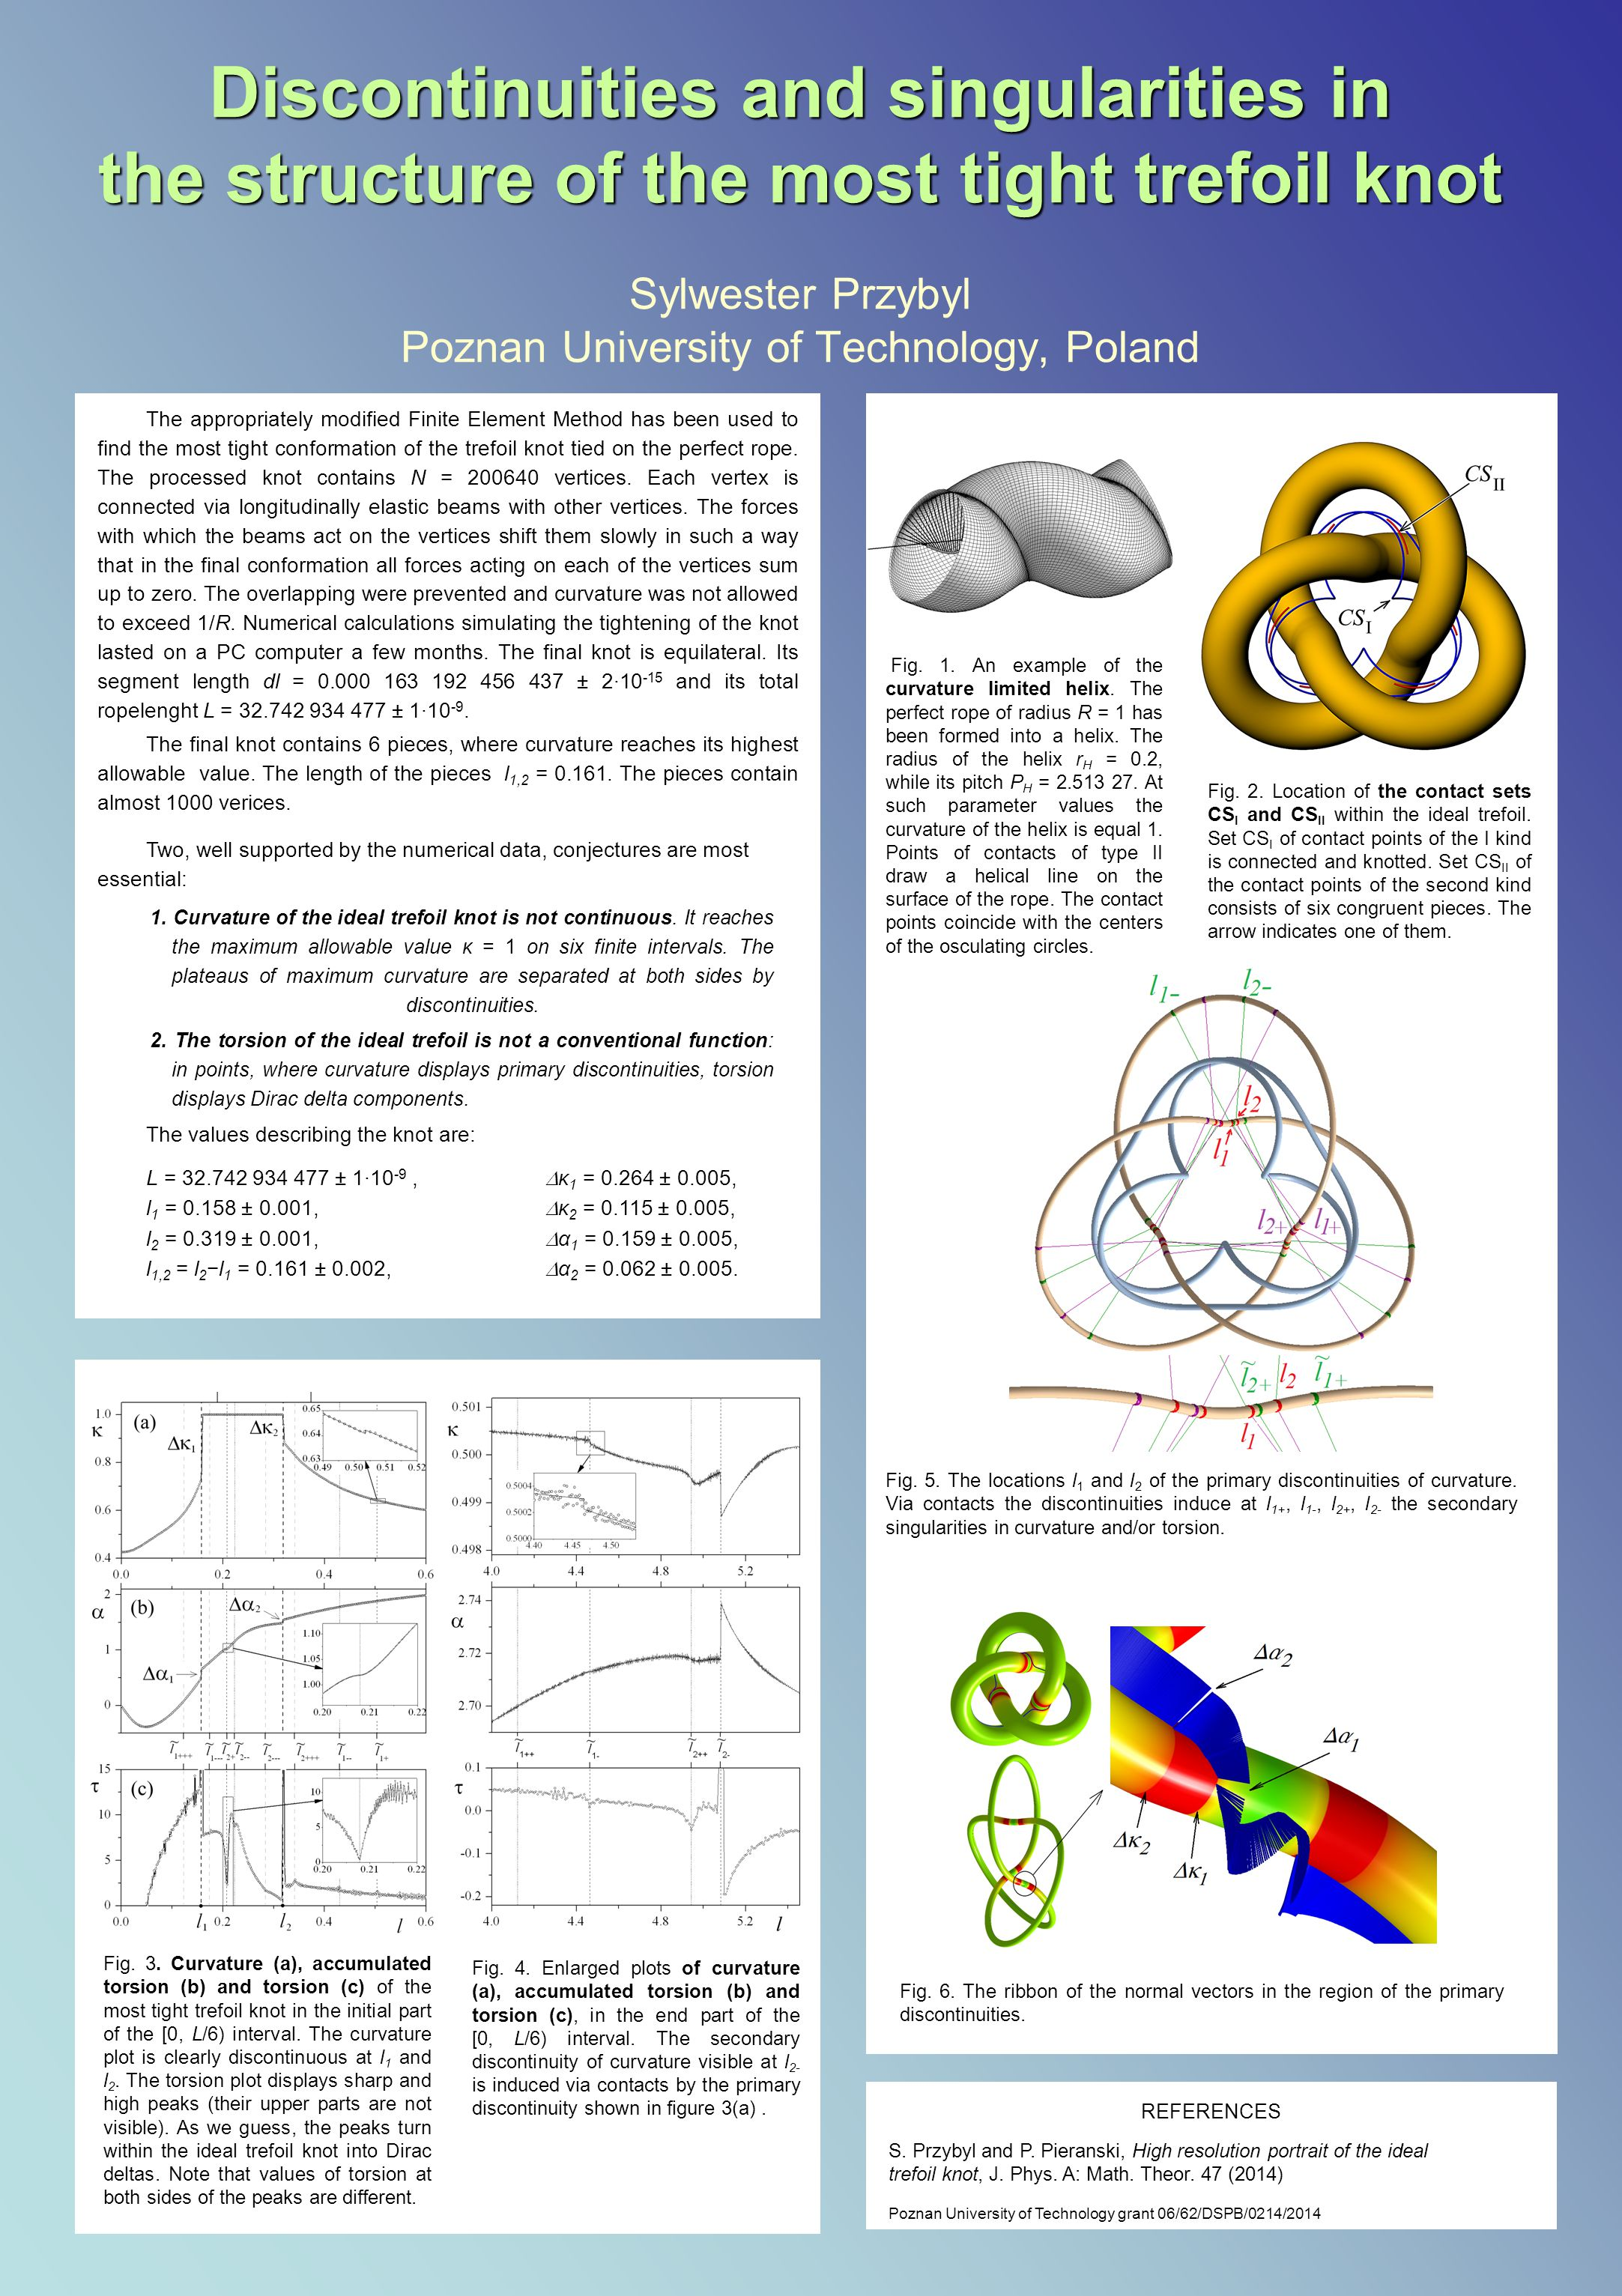 Discontinuities and singularities in the structure of the most tight trefoil knot Discontinuities and singularities in the structure of the most tight